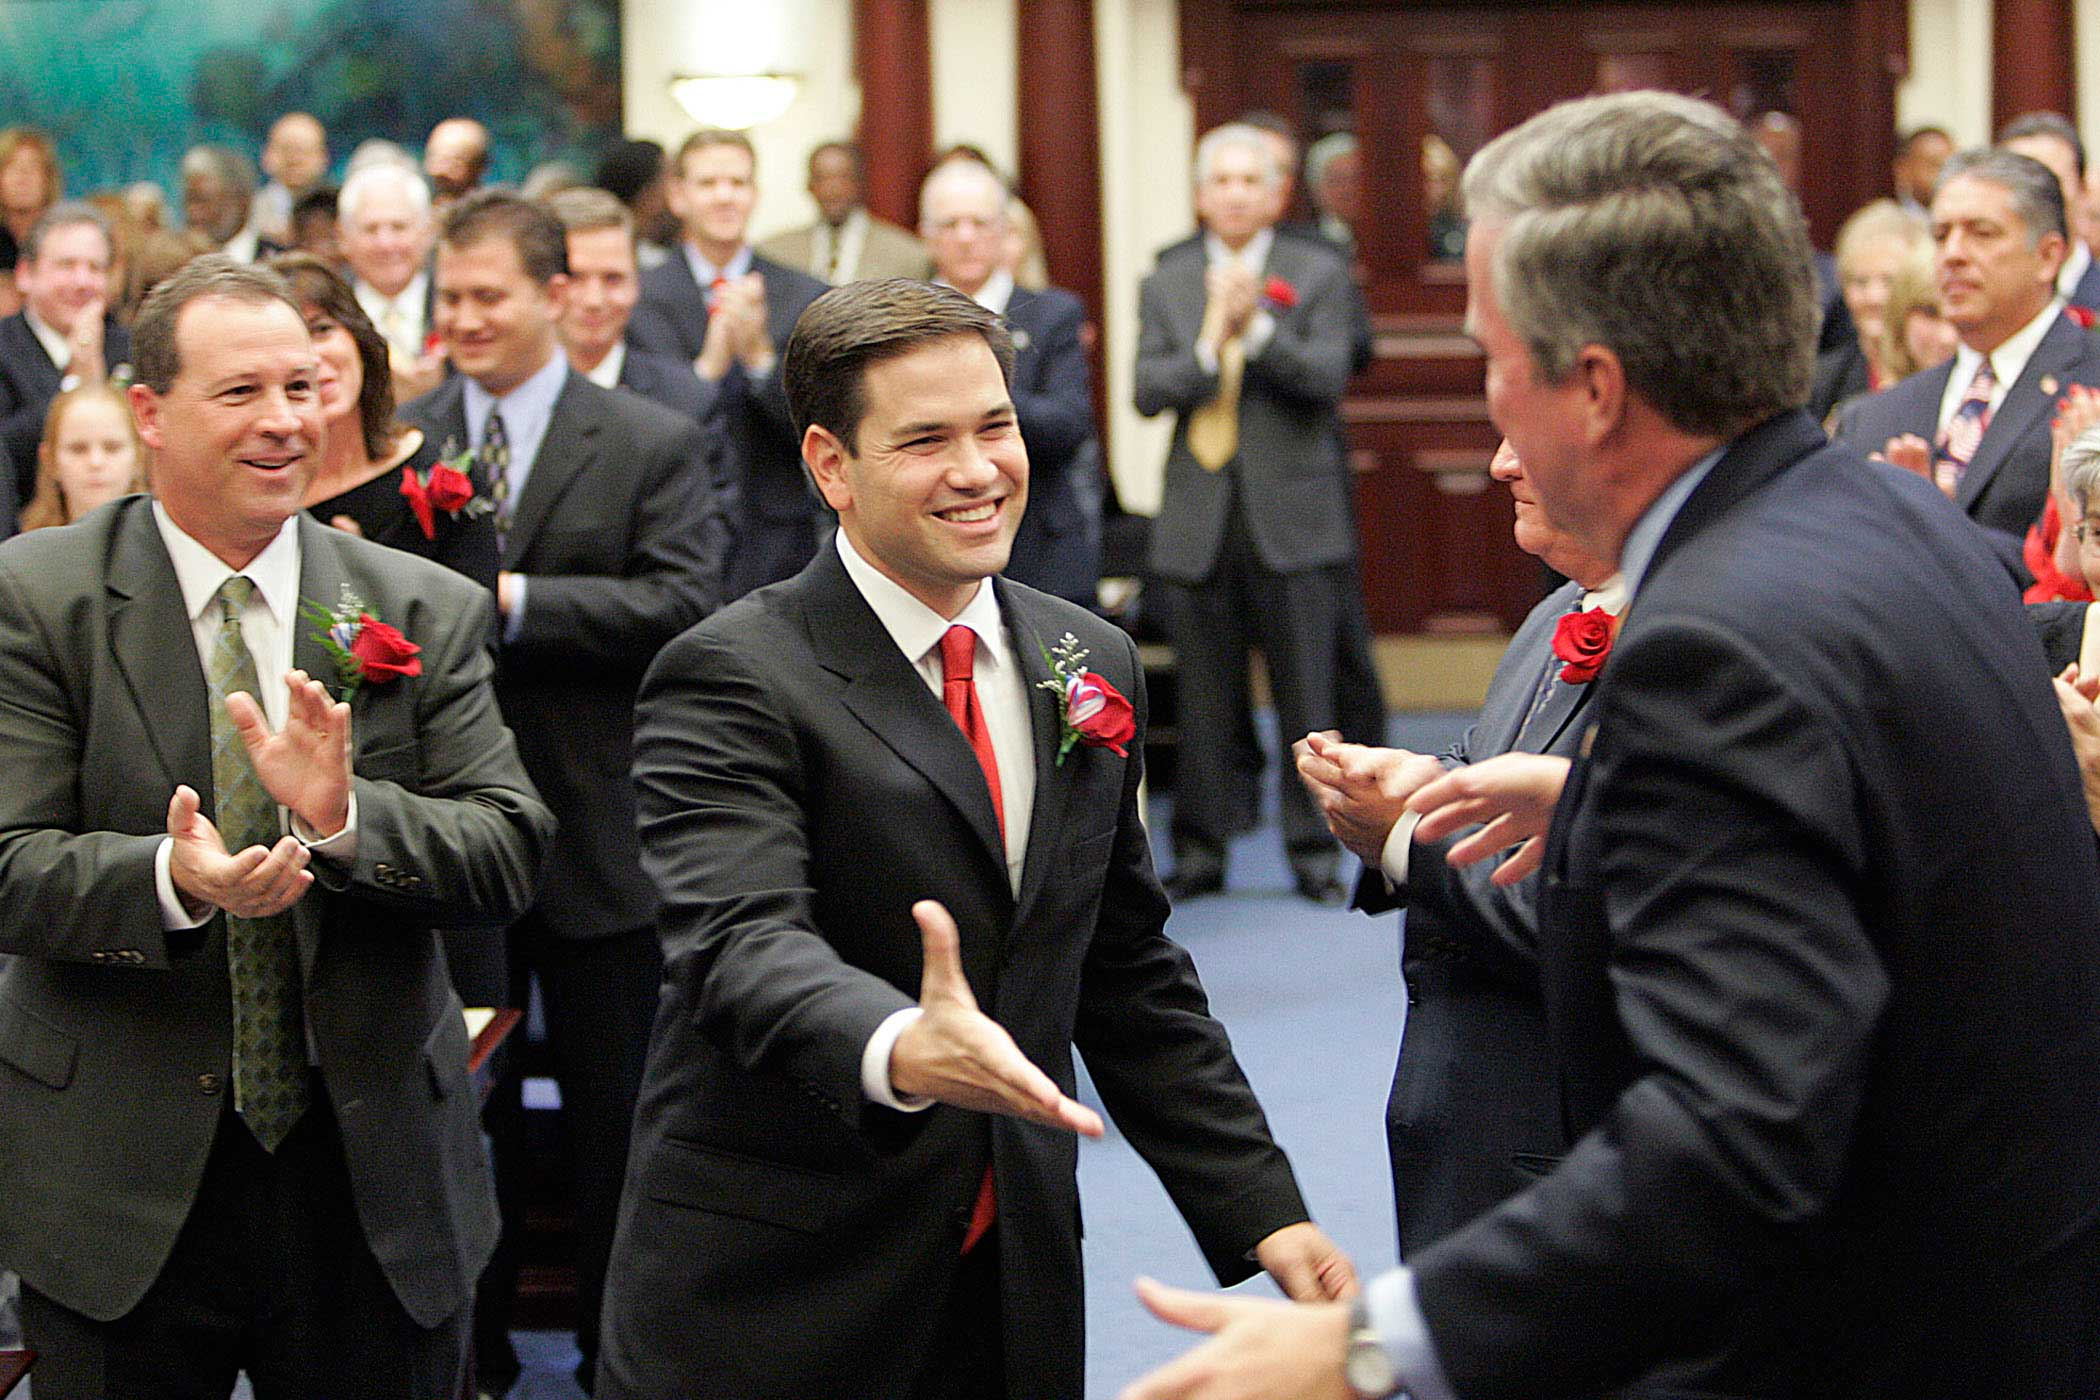 Marco Rubio greets Florida Gov. Jeb Bush, on his way to being sworn in as the new speaker of the Florida House in Tallahassee, Fla., on Nov. 21, 2006.